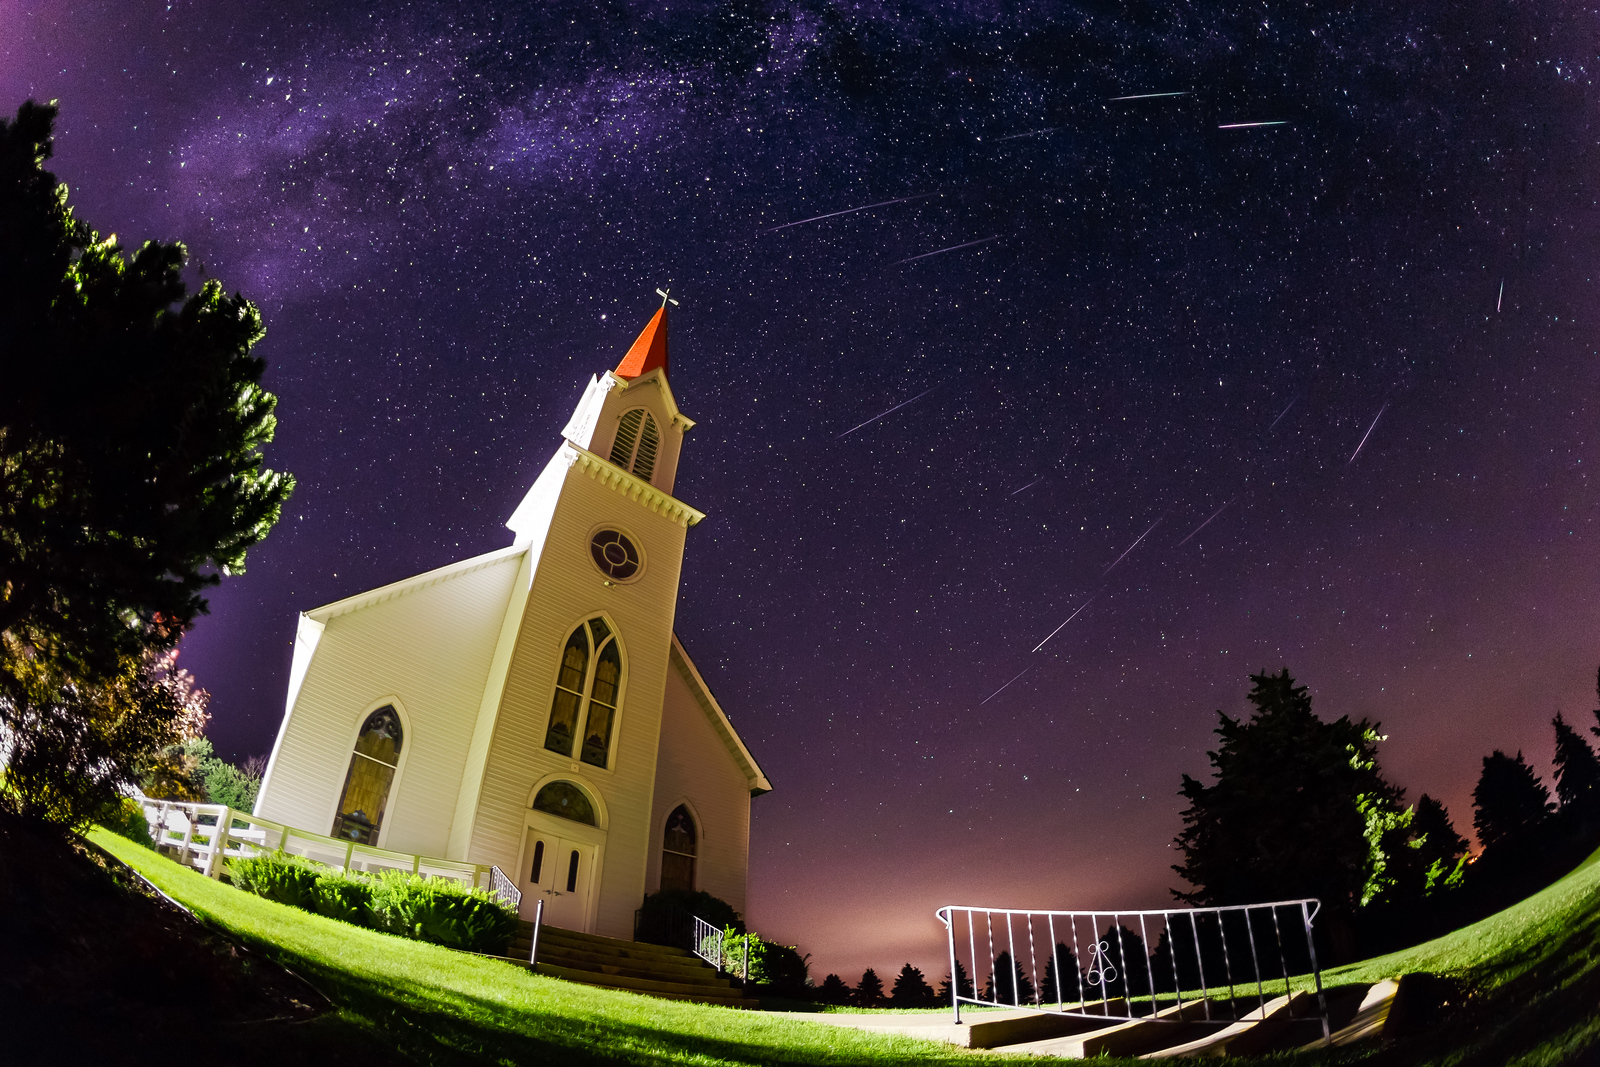 The Perseids meteor shower streaks across the sky over a rural Iowa church